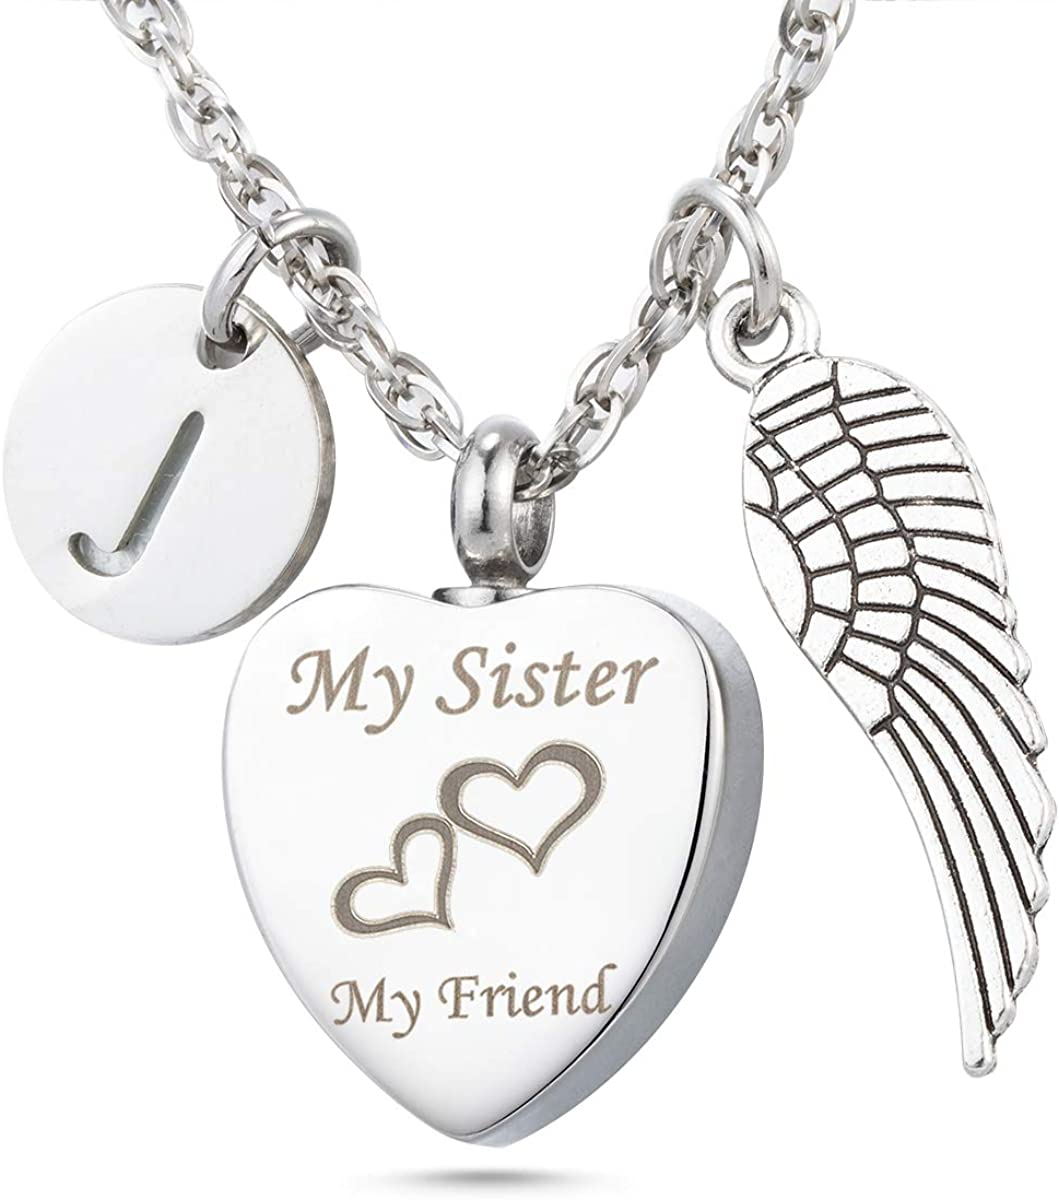 My Sister My Friend Angel Wing Urn Necklace 26 Initial Letter Charm Keepsake Memorial Cremation Jewelry